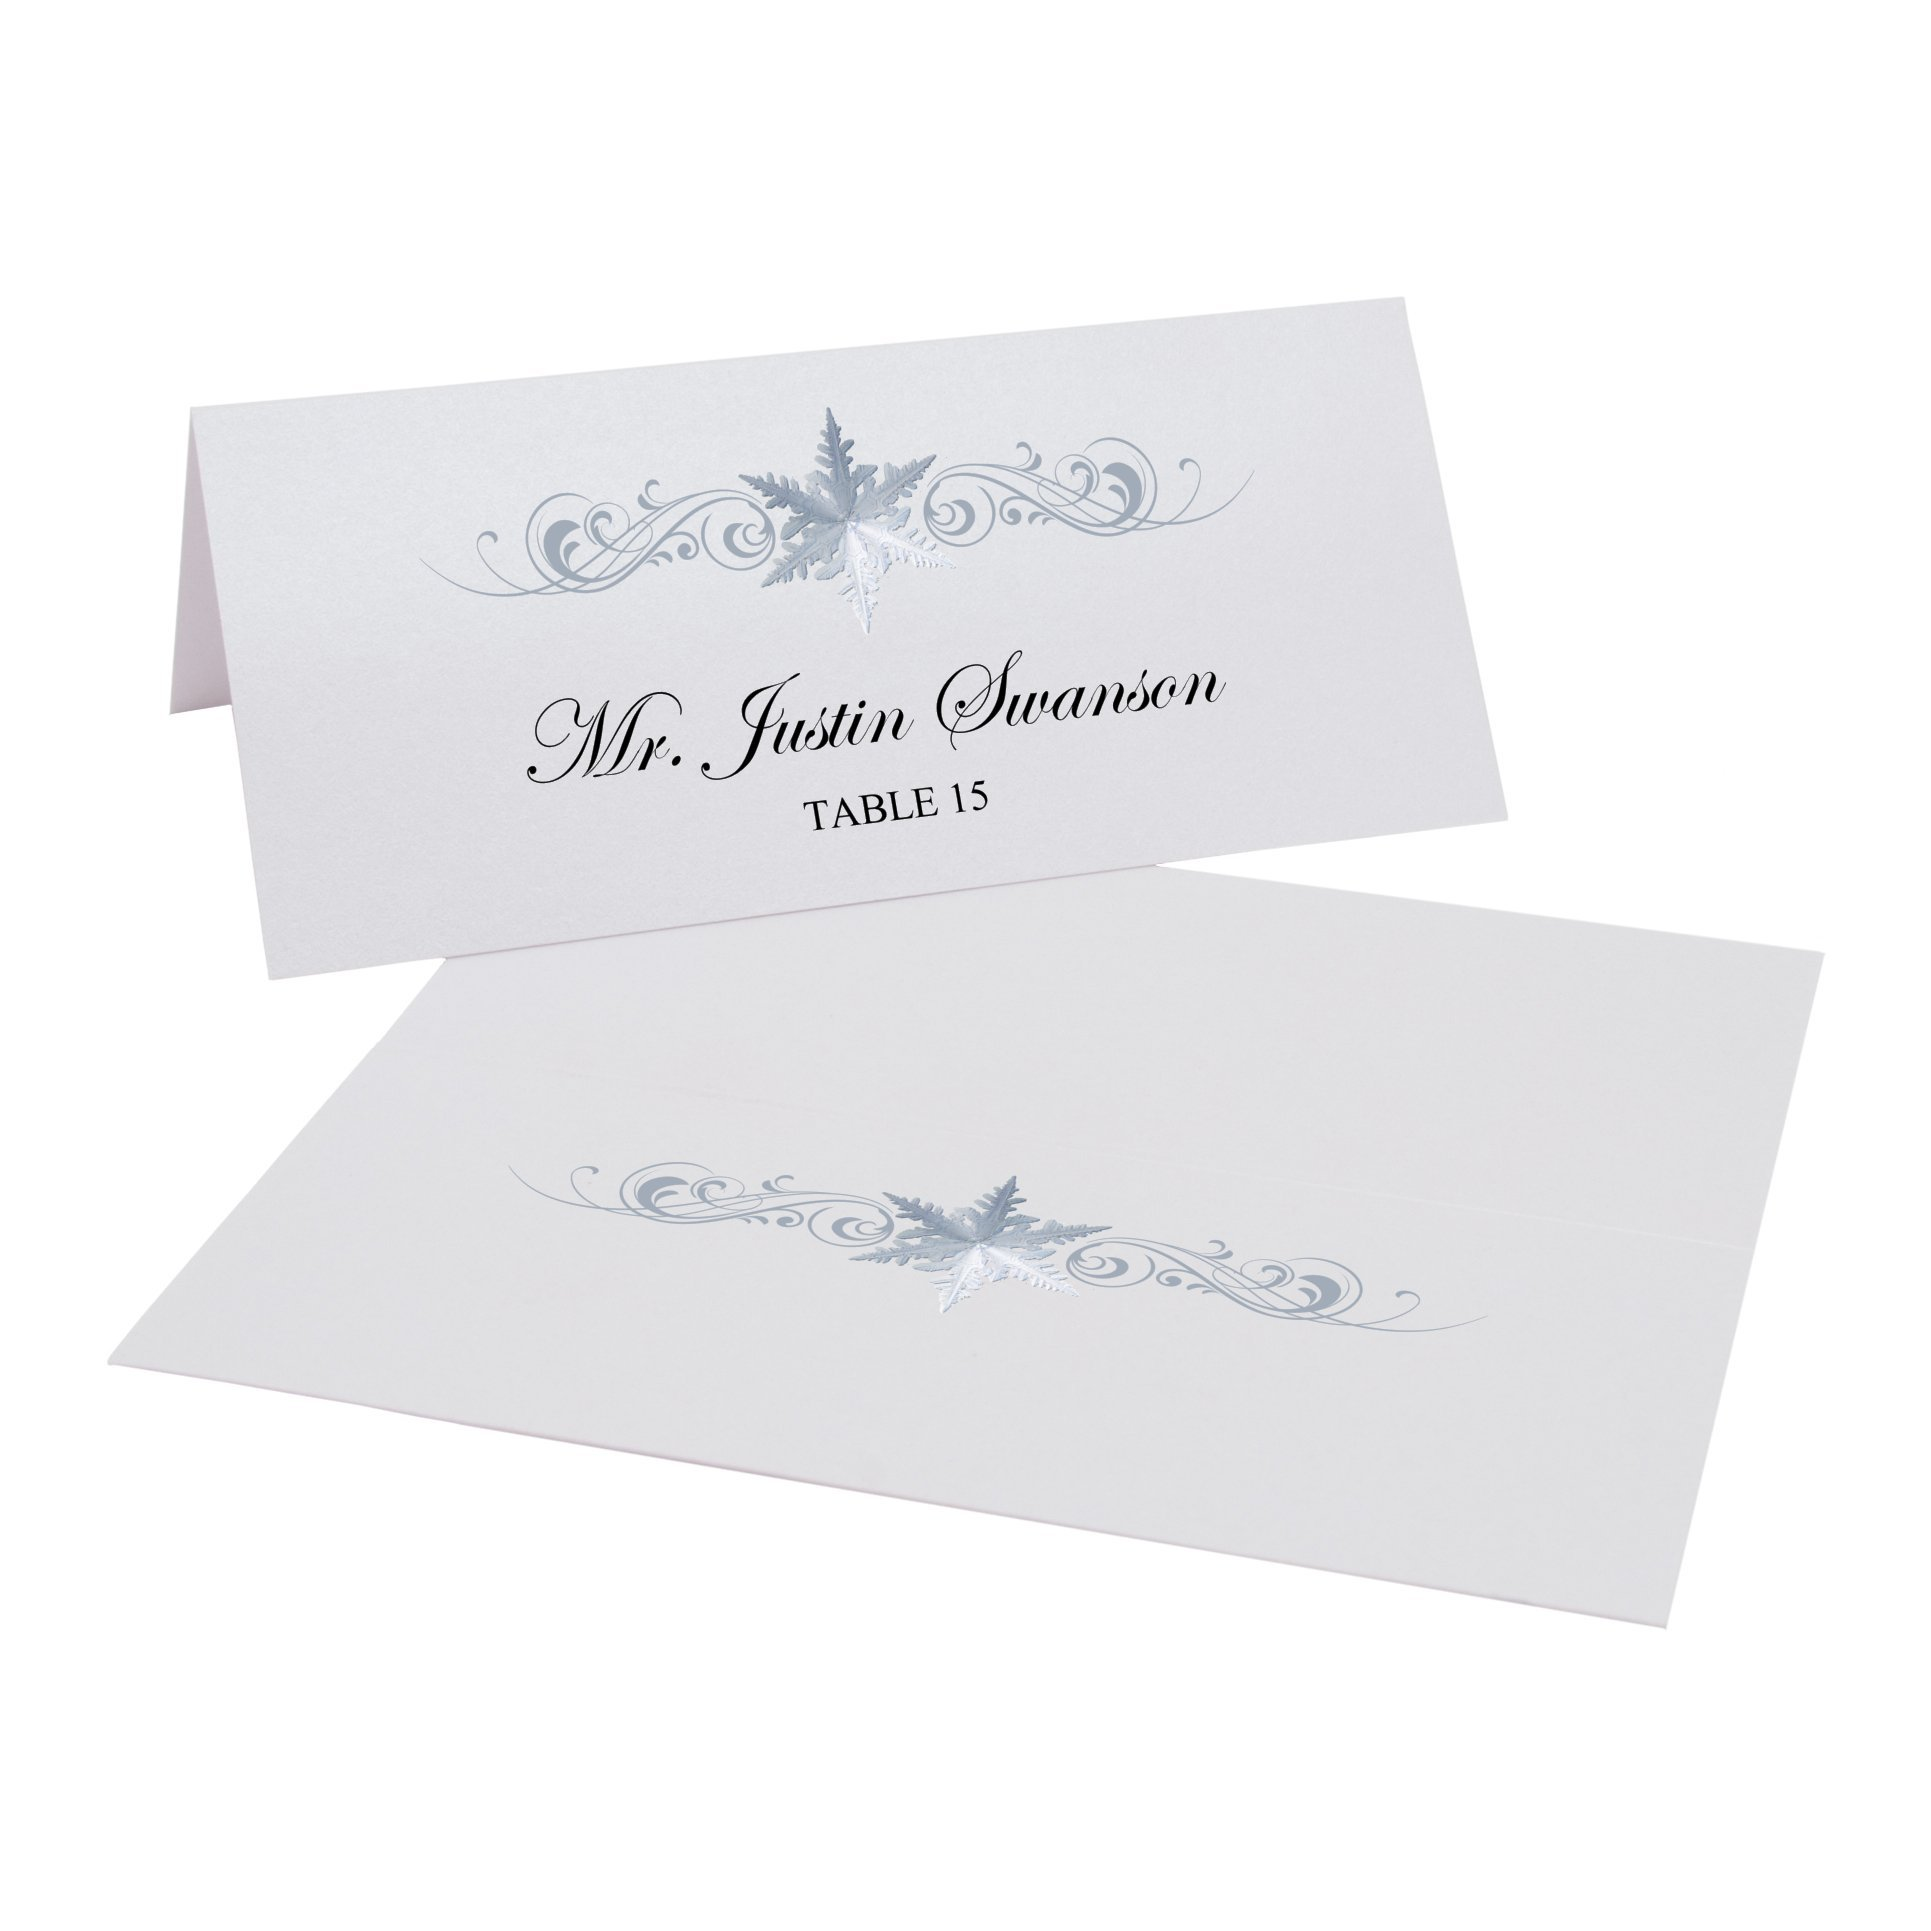 Snowflake Flourish Place Cards, Pearl White, Set of 375 by Documents and Designs